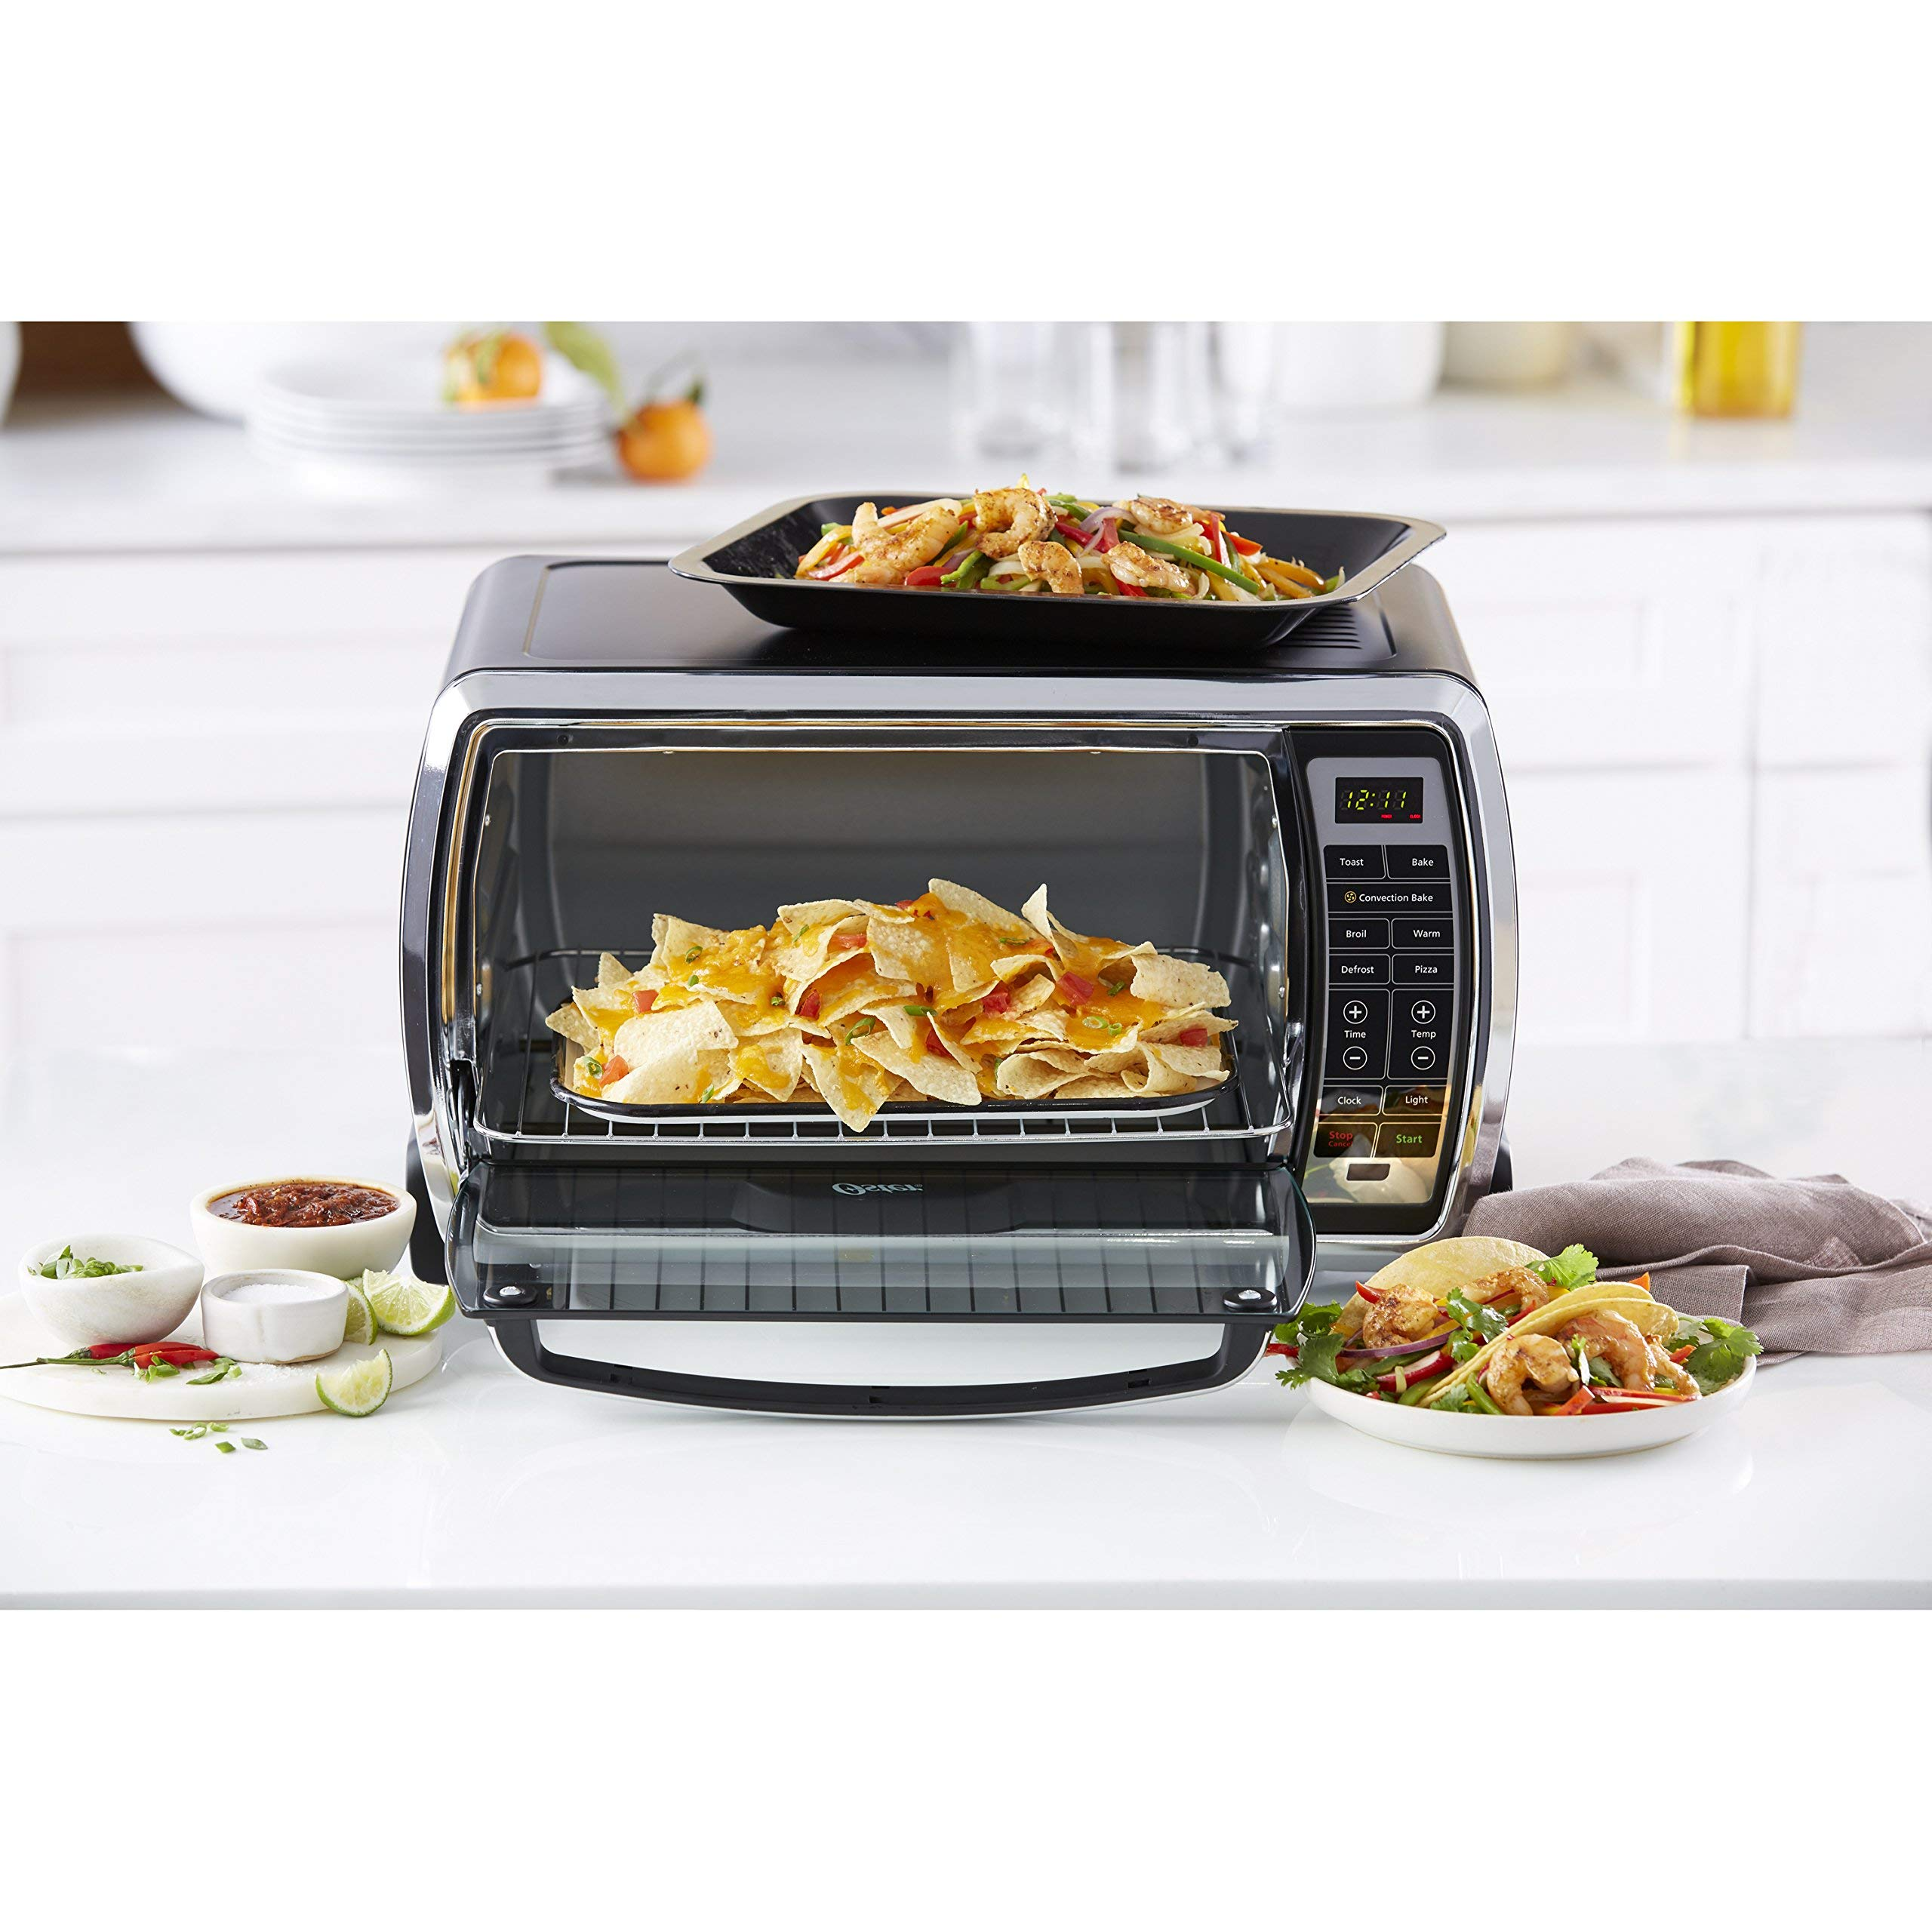 Oster Large Digital Countertop Convection Toaster Oven, 6 Slice, Black/Polished Stainless (TSSTTVMNDG-SHP-2) (Renewed) by Supportiback (Image #6)